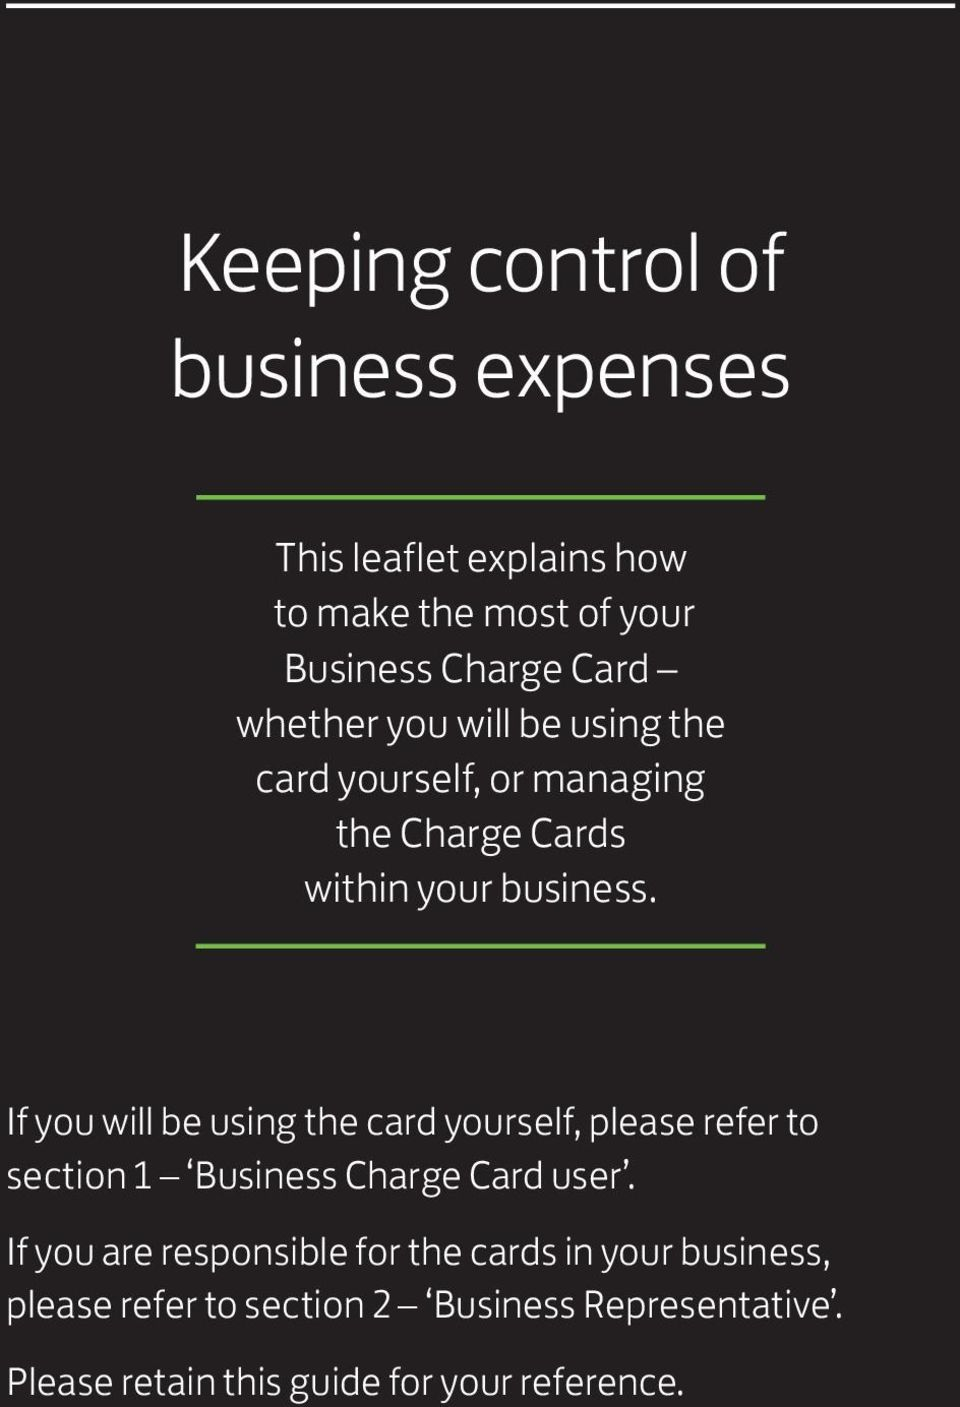 If you will be using the card yourself, please refer to section 1 Business Charge Card user.